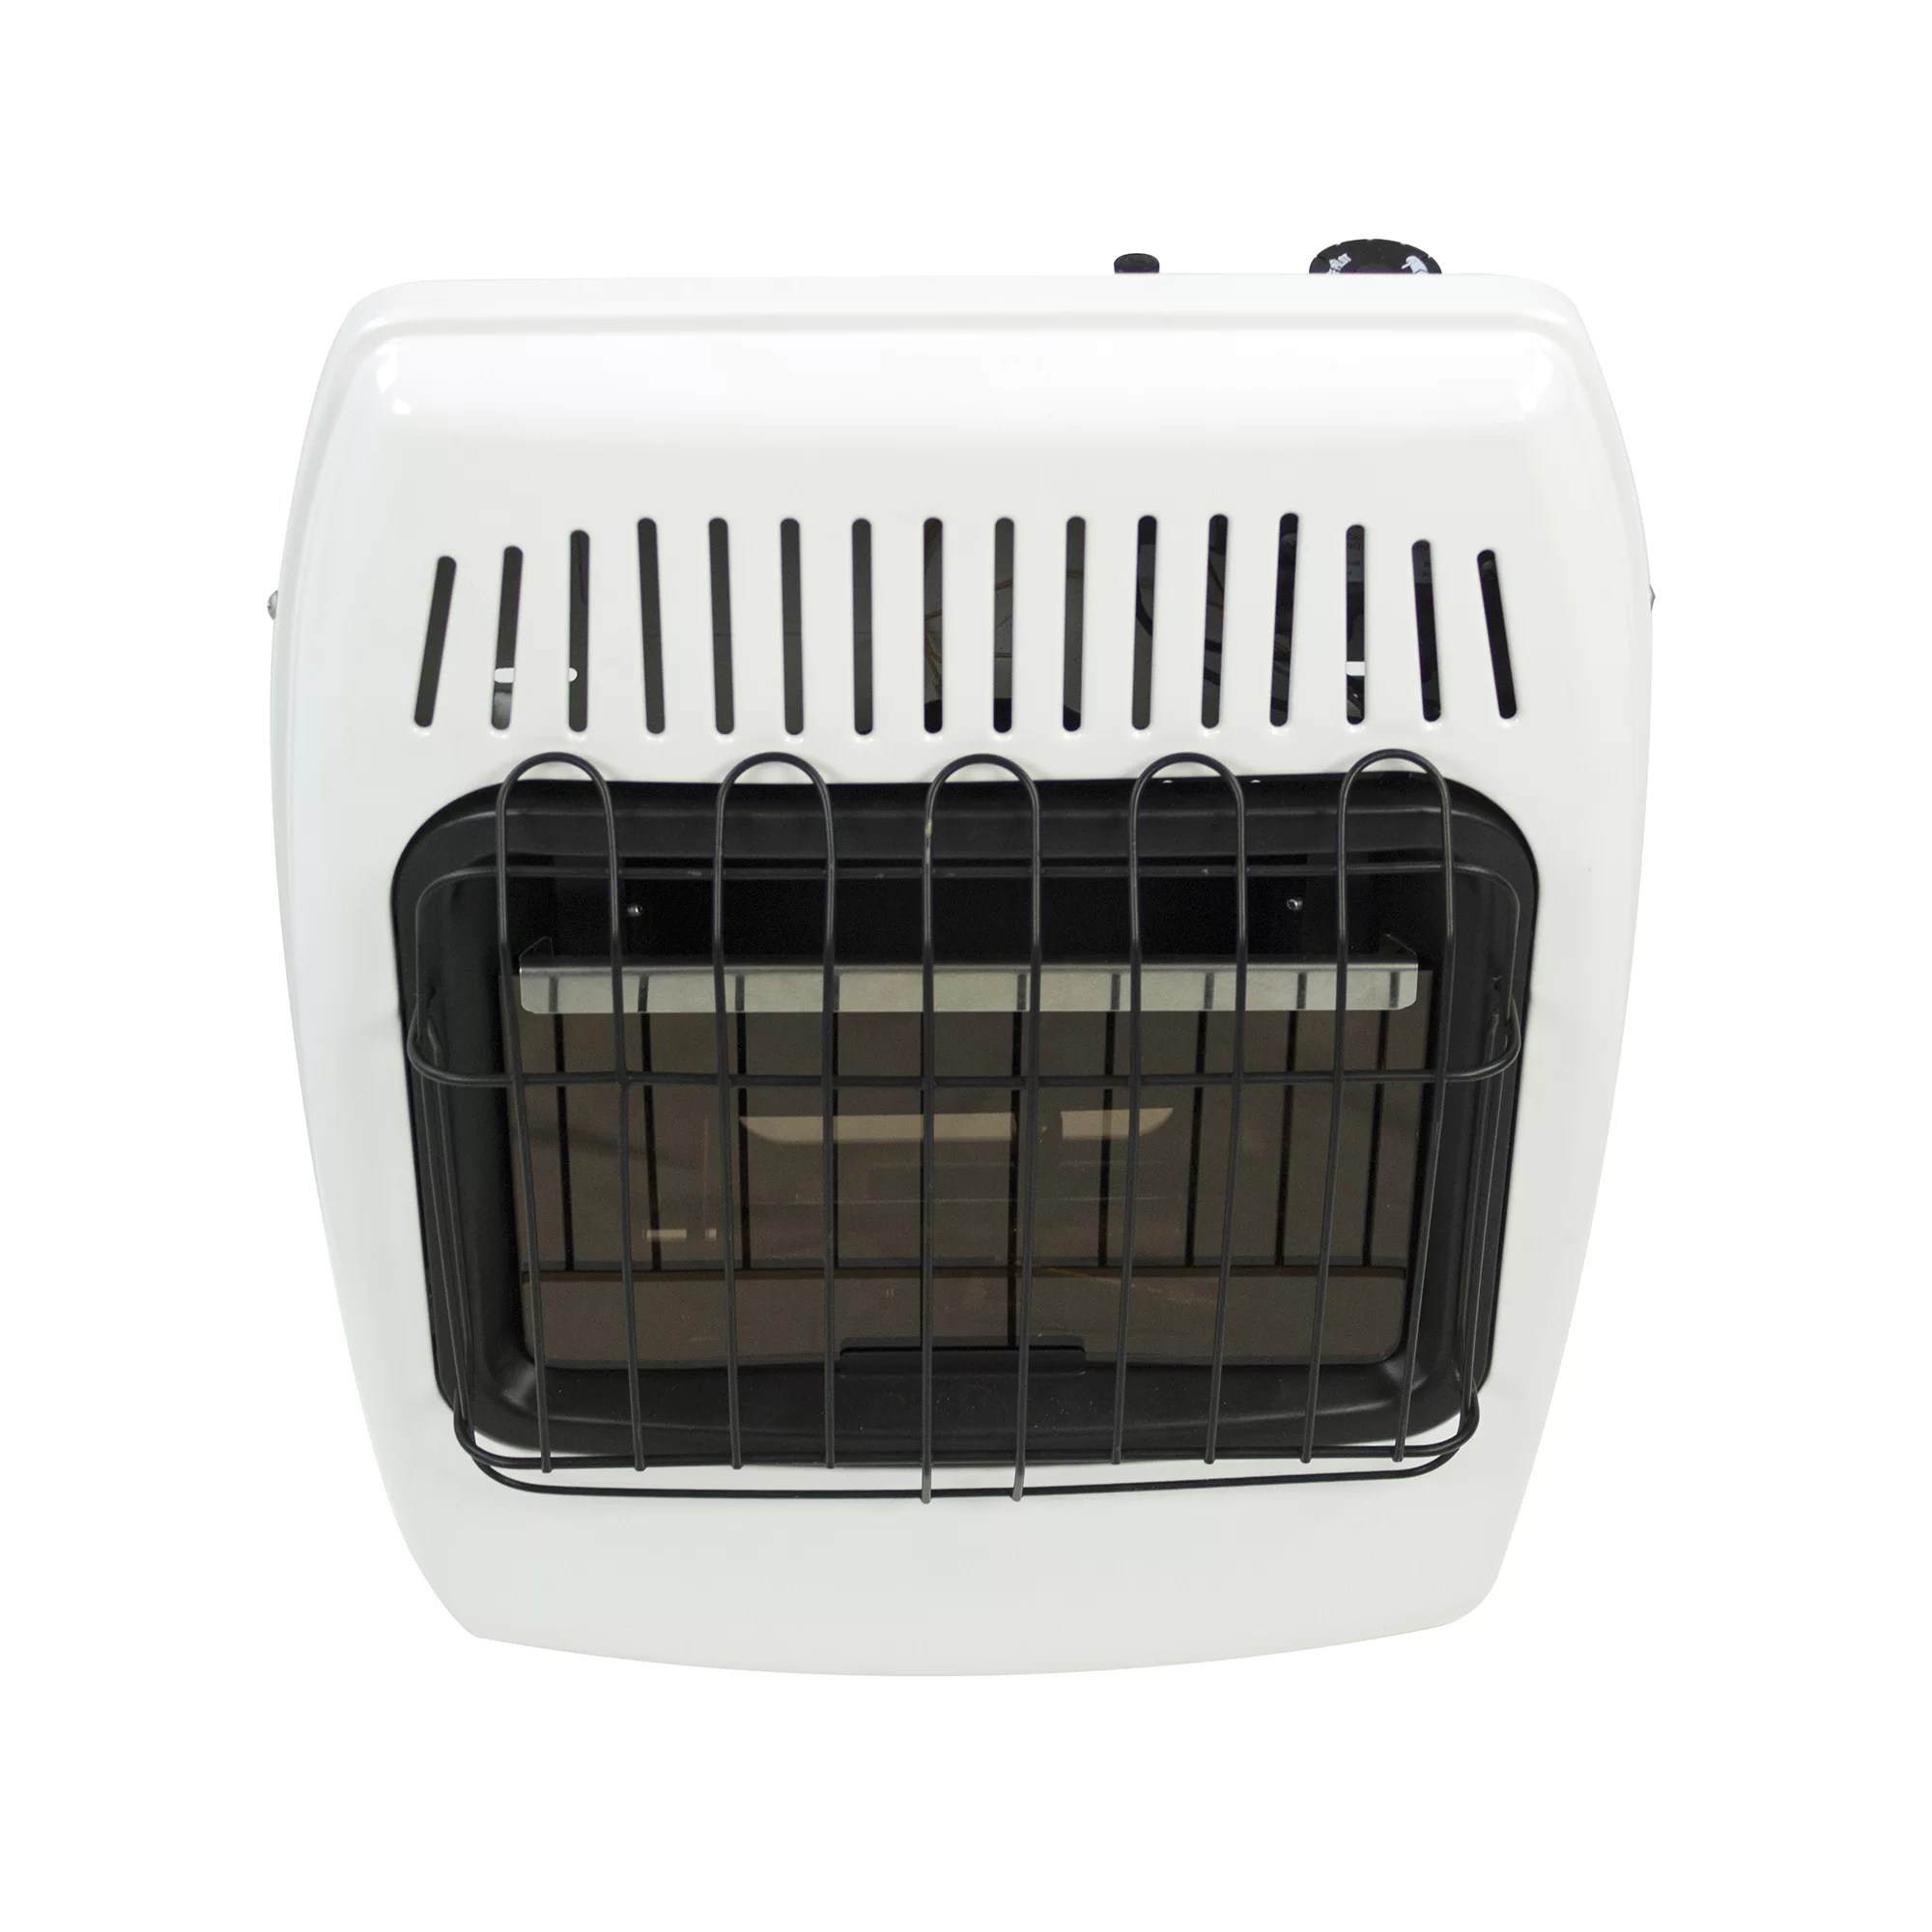 Garage Heater For Dogs 10 000 Btu Wall Mounted Single Fuel Manual Vent Free Heater